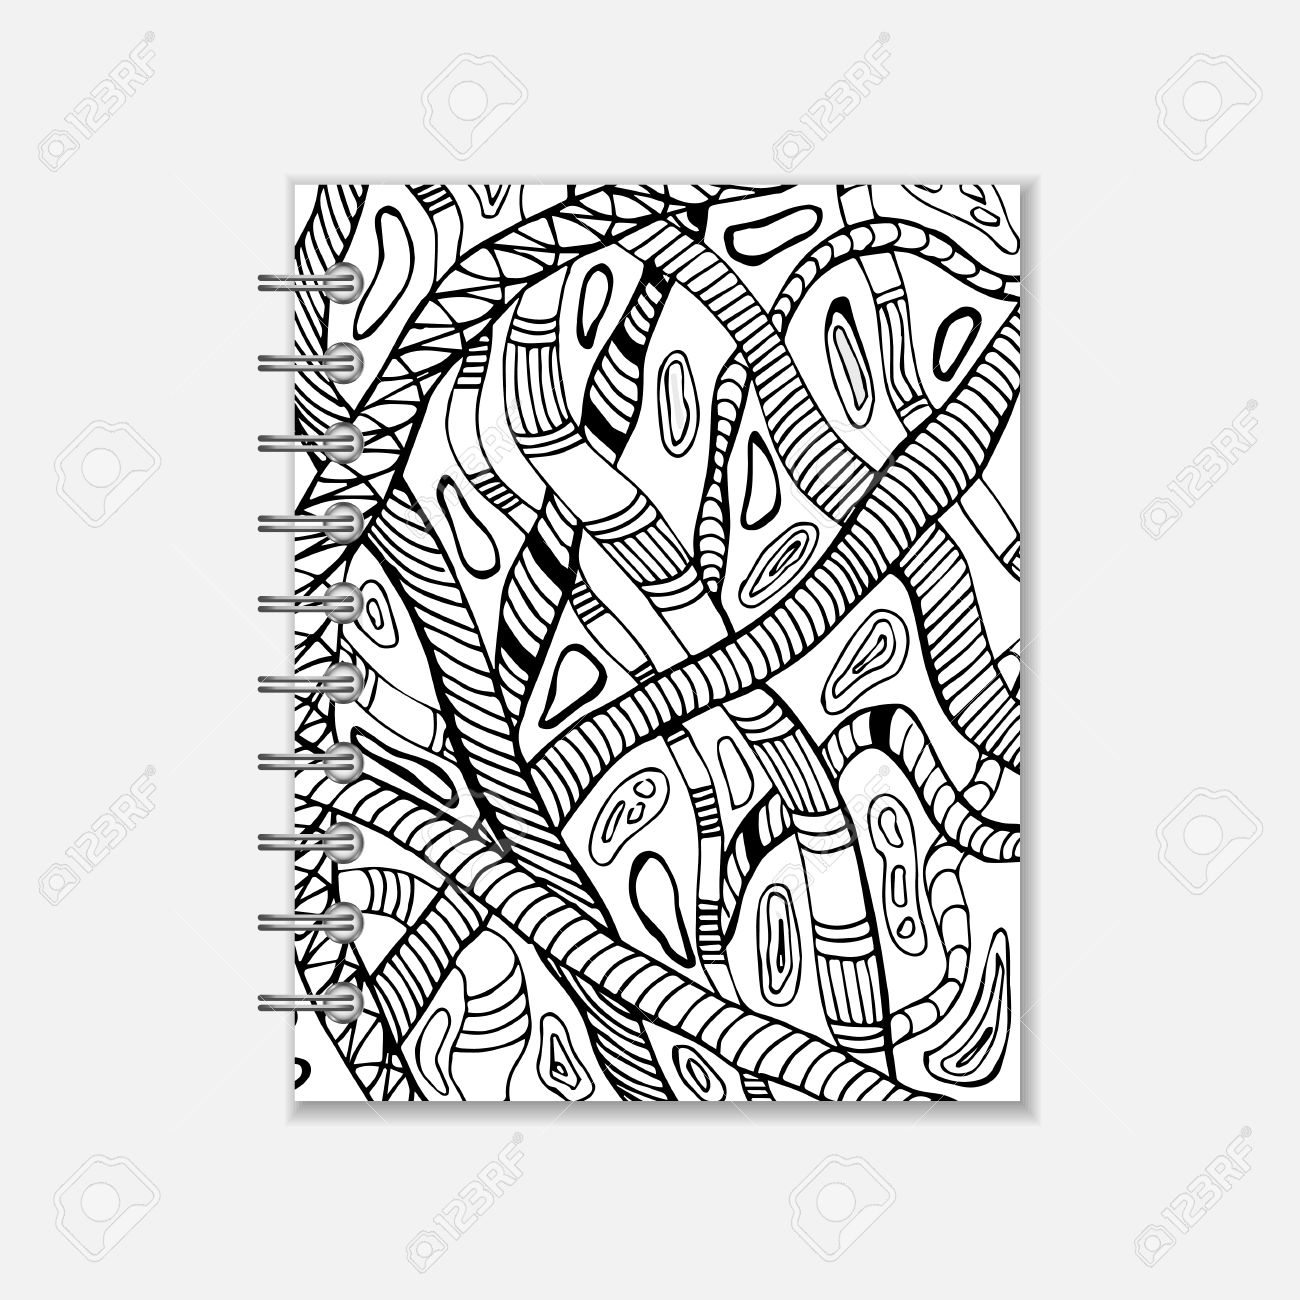 Ring Bound Notebook Cover Design With Hand Drawn Snake Pattern